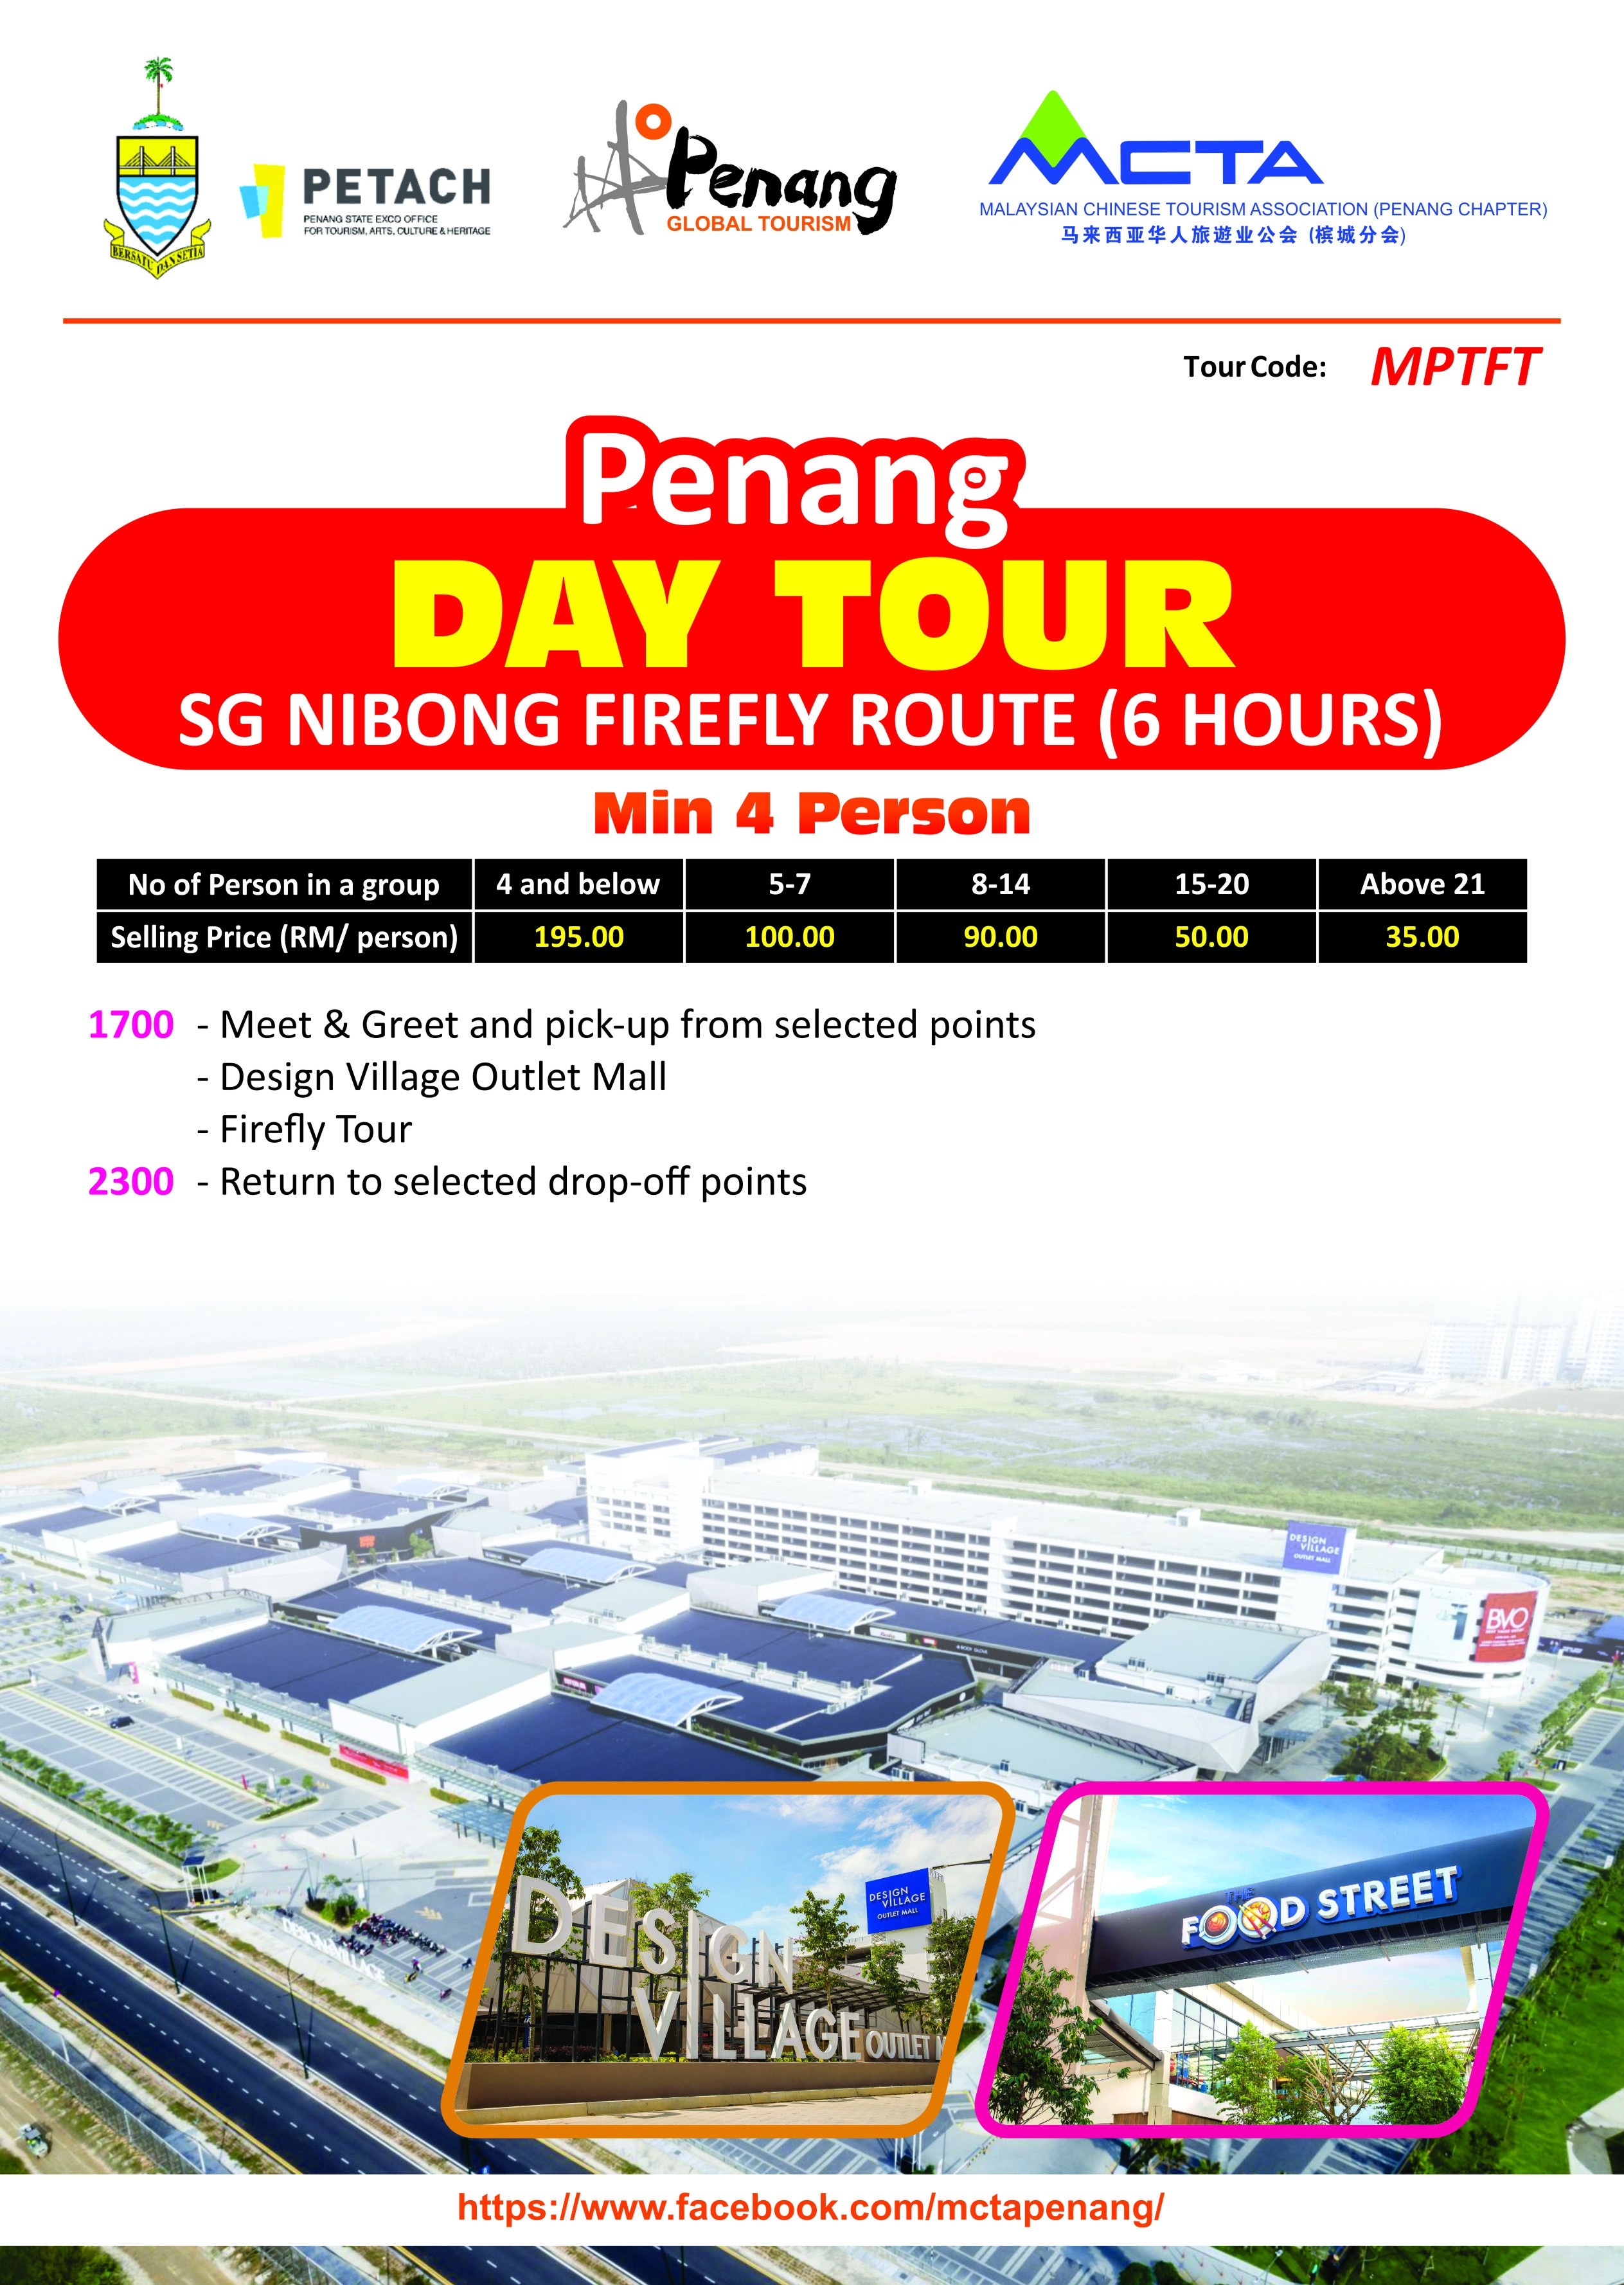 Penang Day Tour - Sg Nibong Firefly Route (6 Hours)